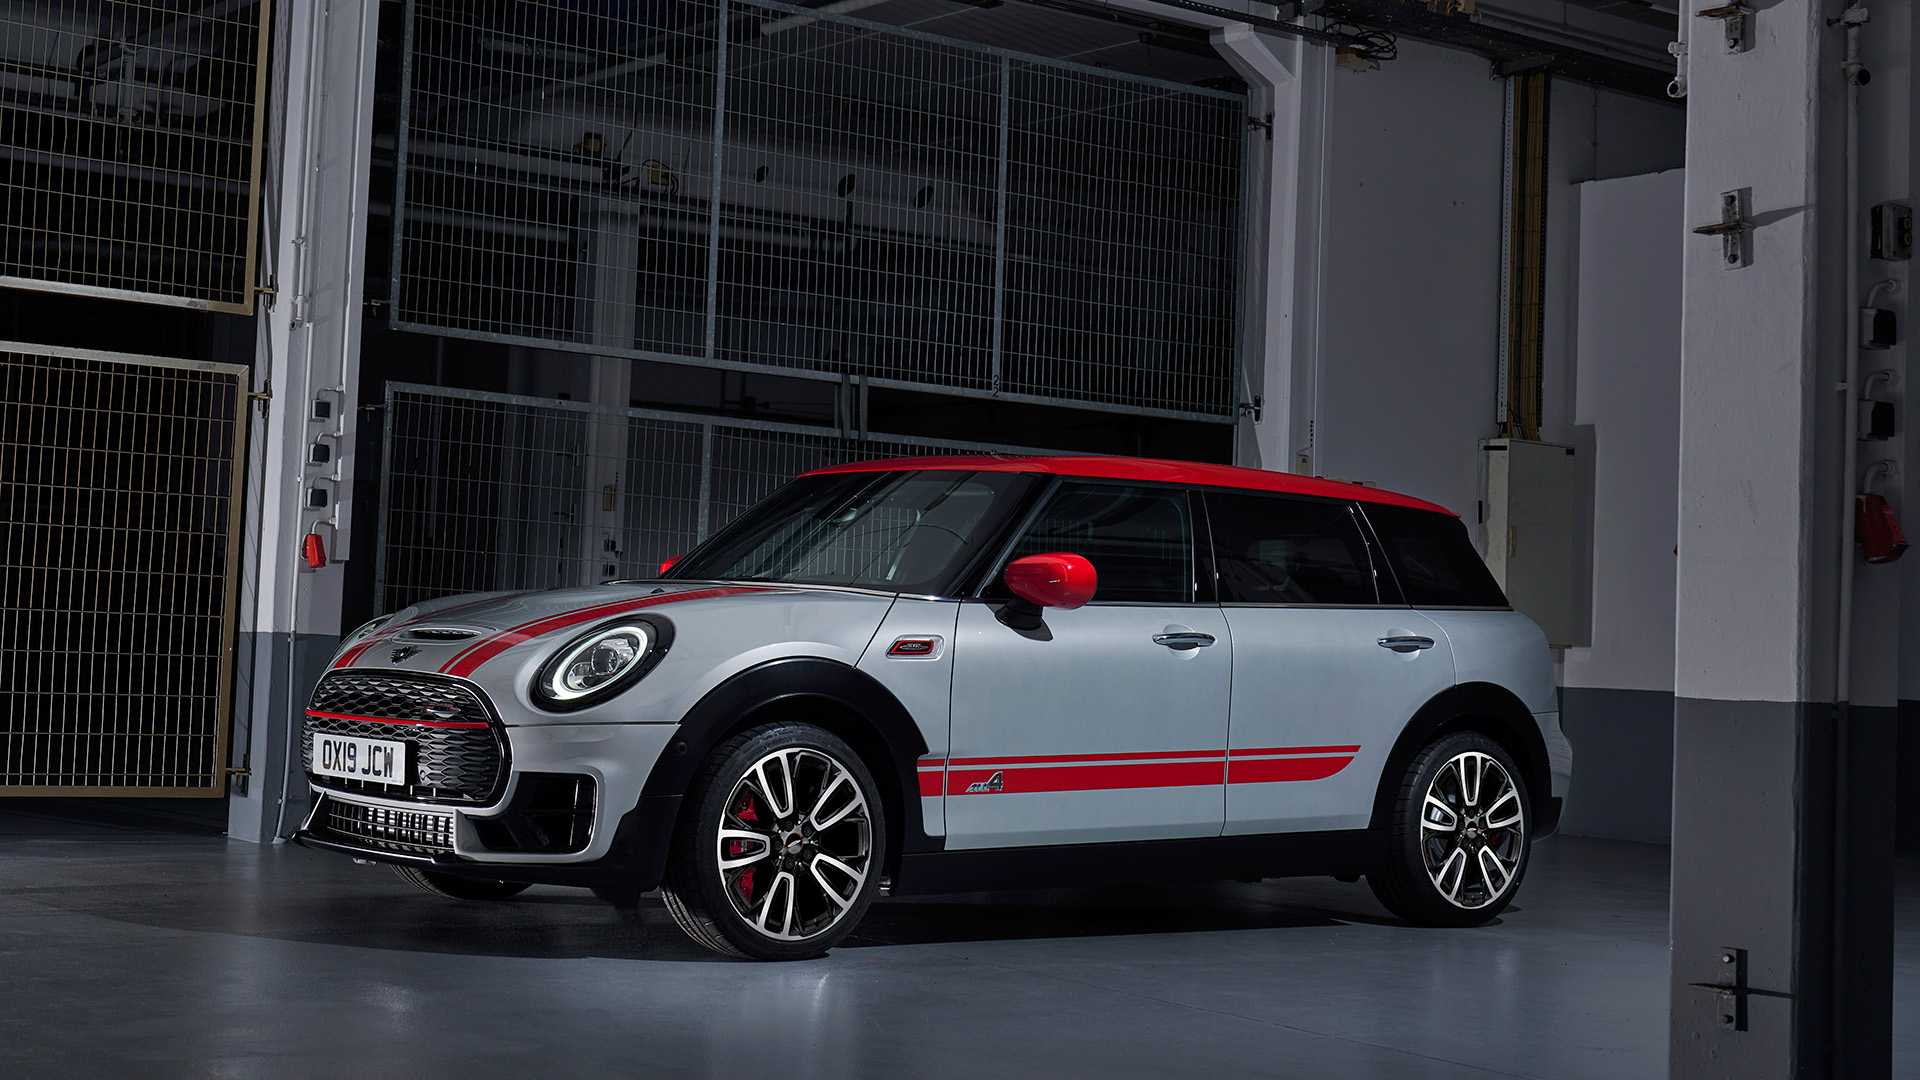 67 A 2020 Mini Cooper Clubman Picture